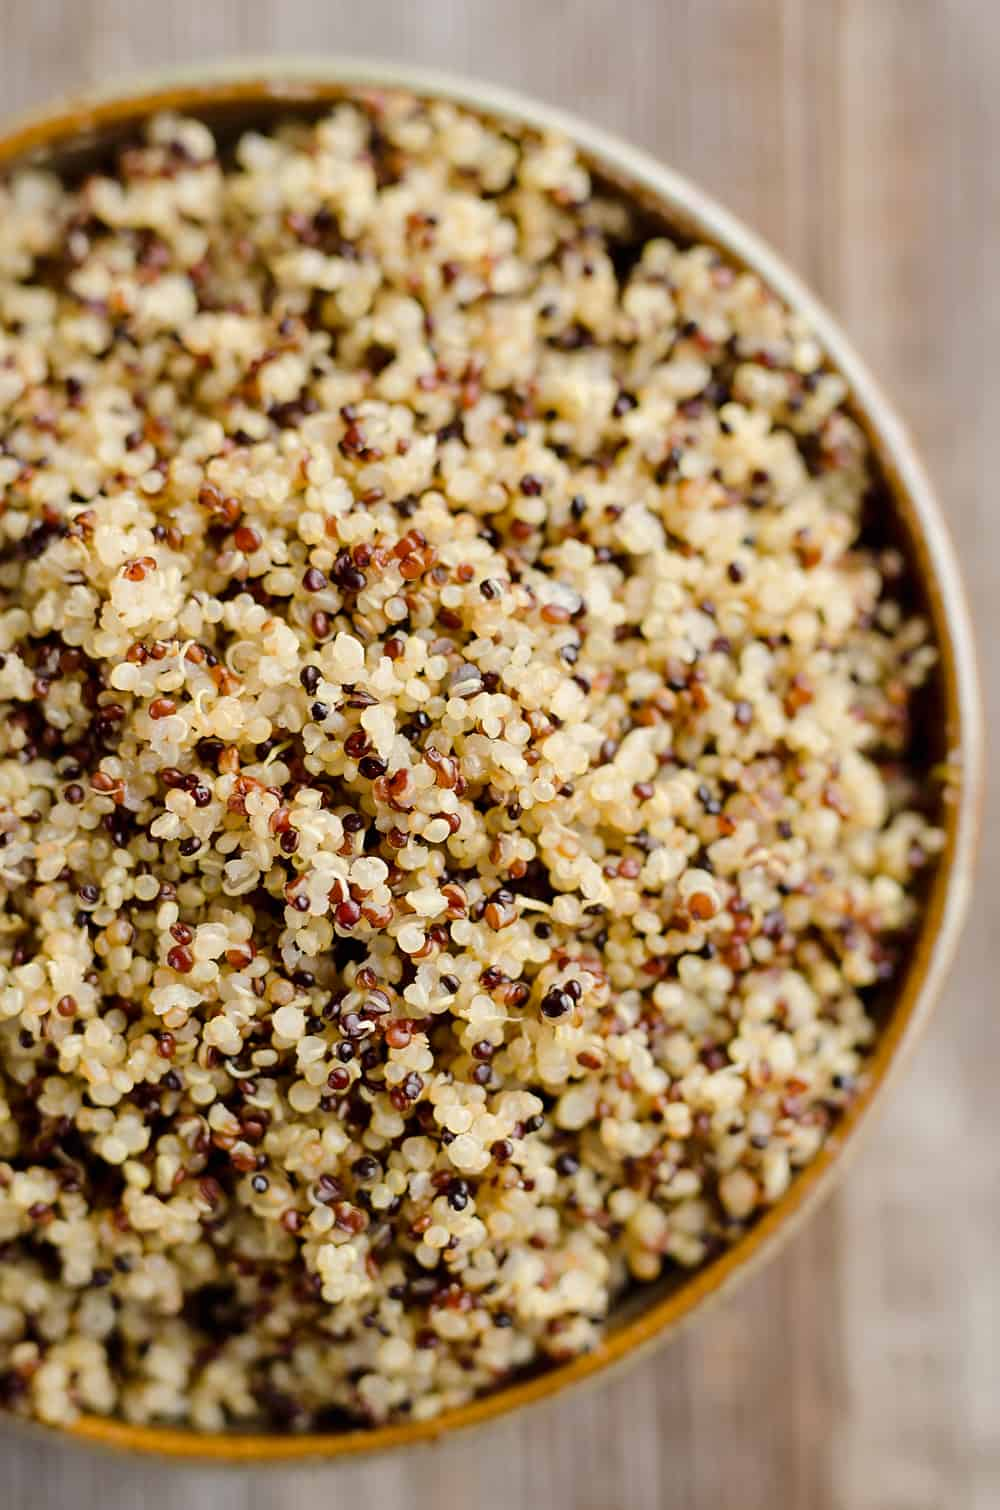 This is the Easiest Fluffy Quinoa Recipe you will make with the help of your Pressure Cooker. Set it and forget it for the best quinoa made in your Instant Pot in just 20 minutes.